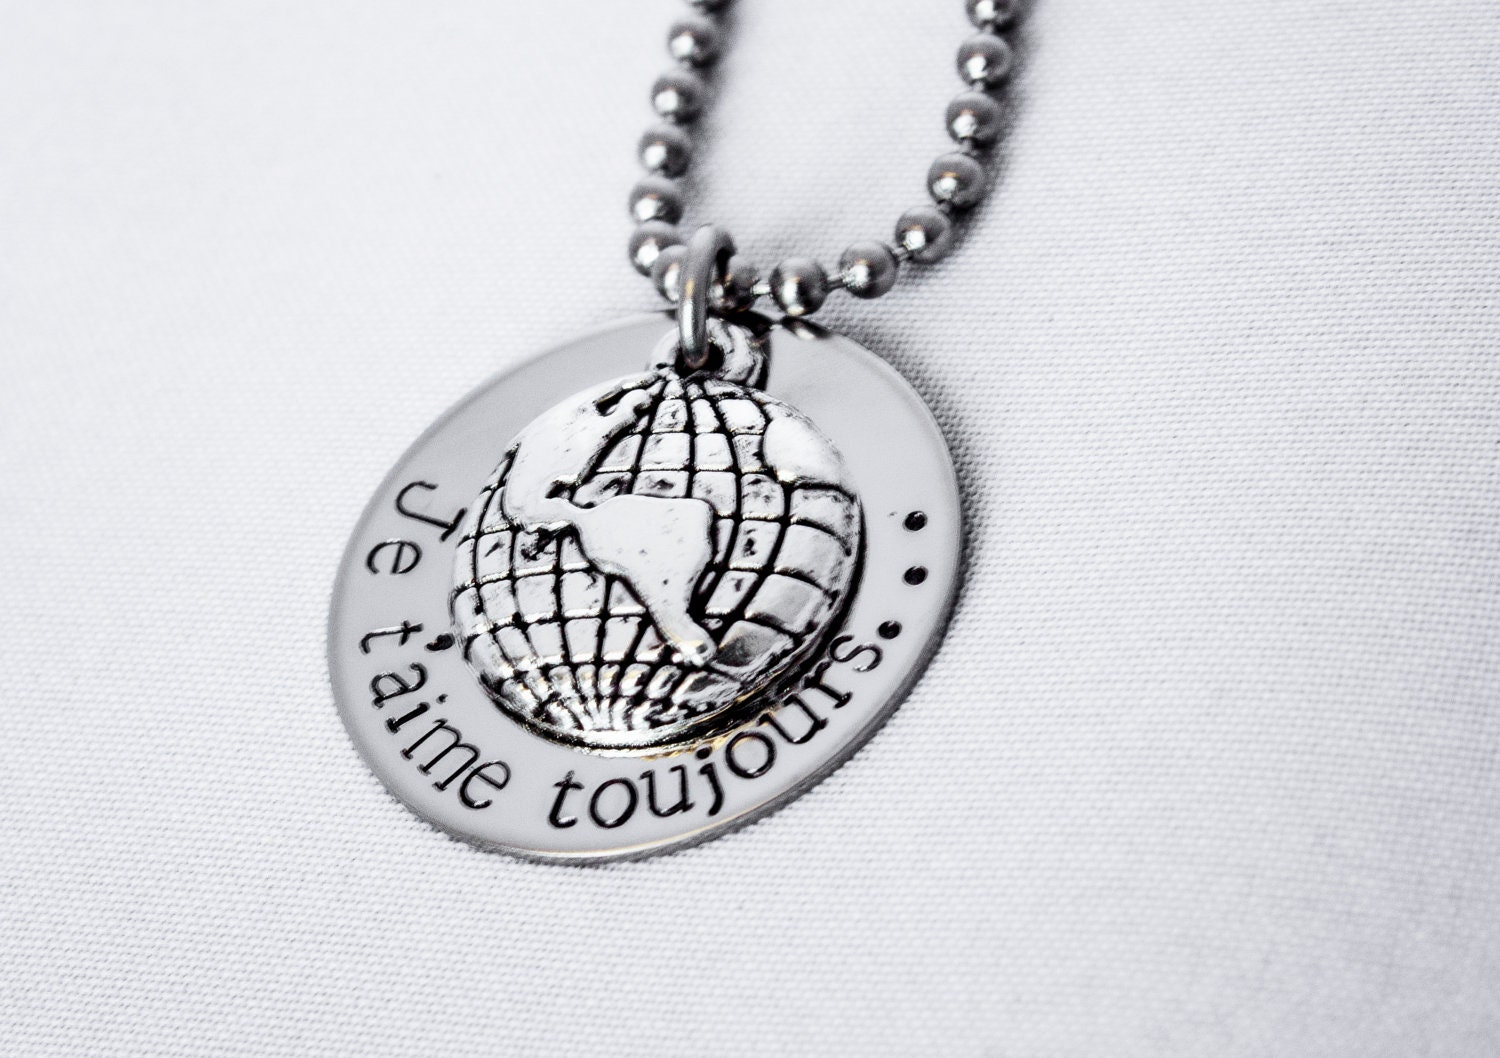 Tungsten Carbide Rings: Adoption Love Necklace